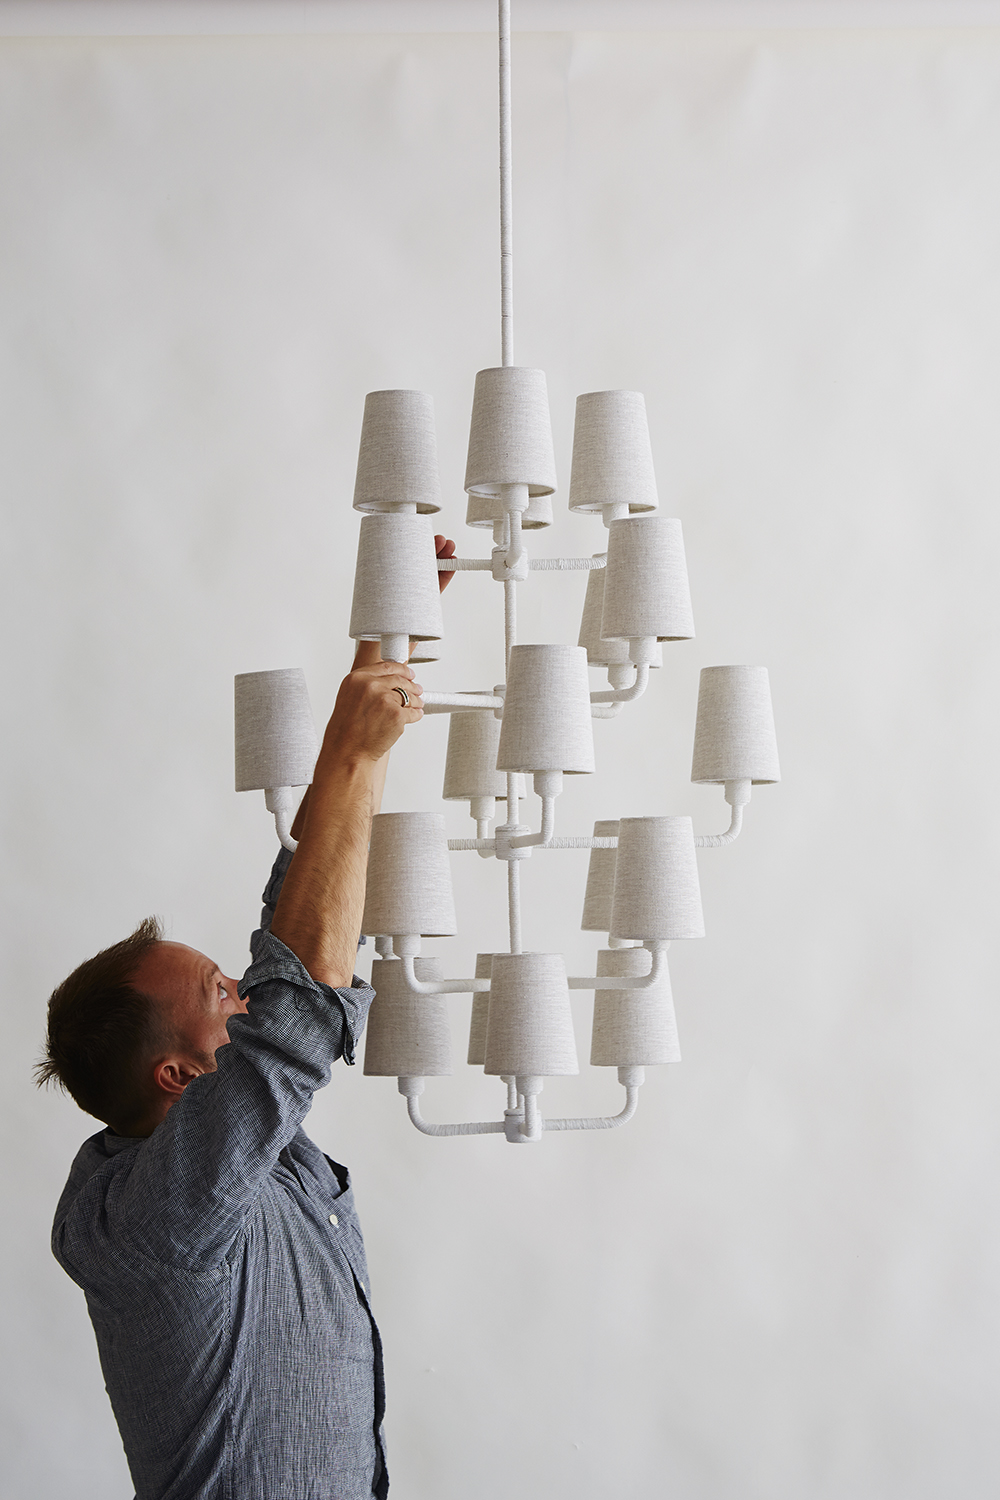 Rope_C-176_5-Tiered Rope Chandelier with Chad_White_Wheat.jpg